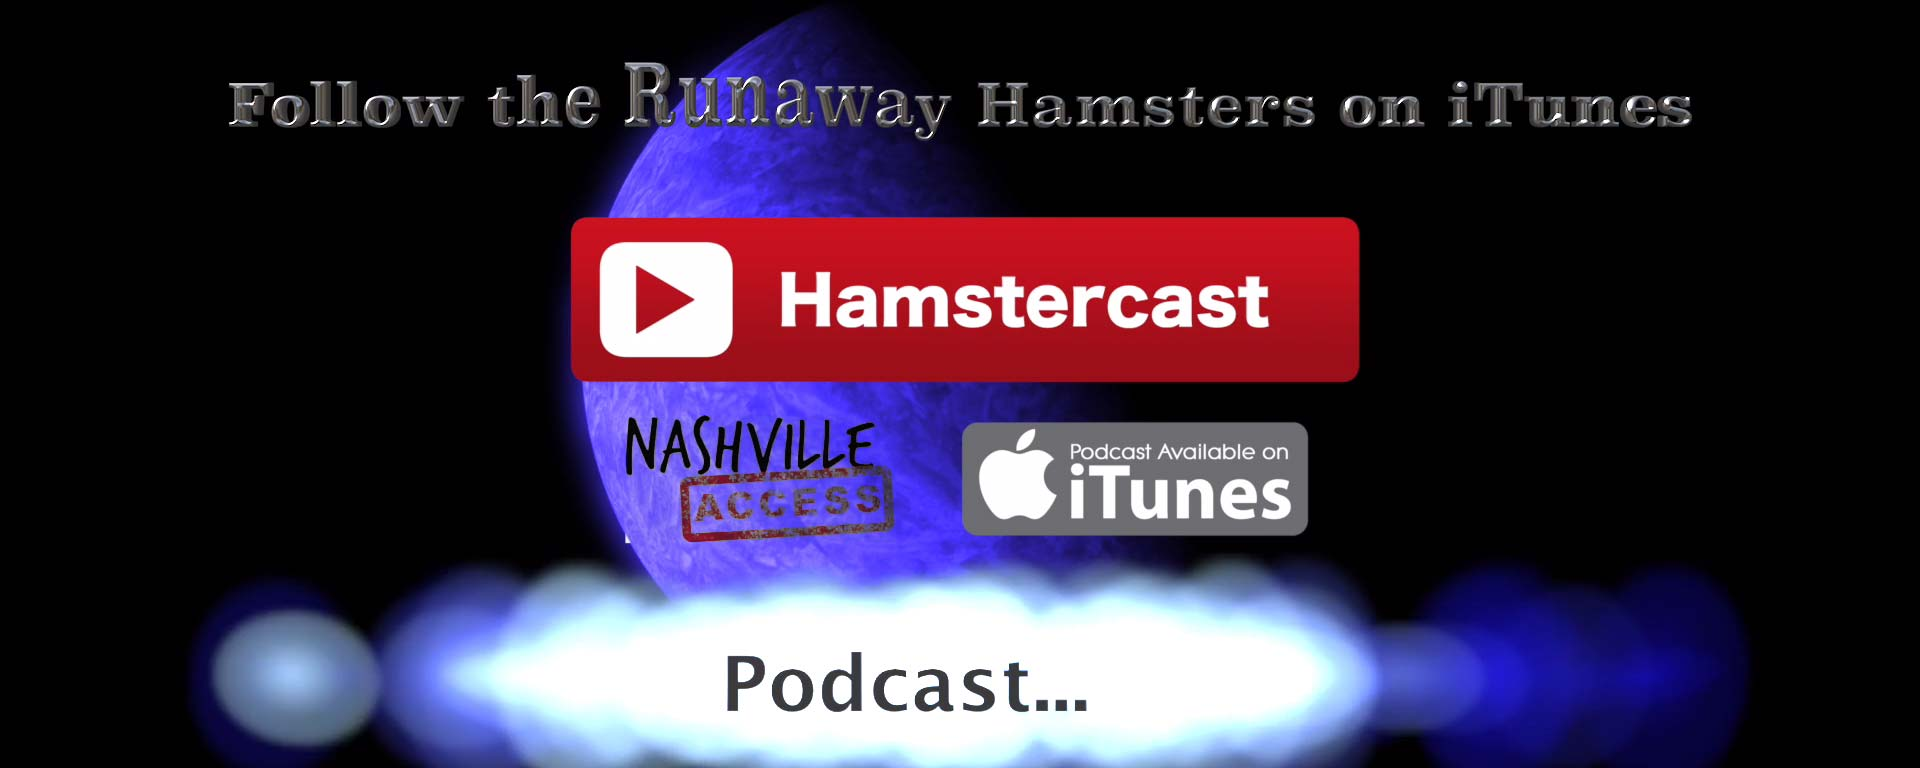 The Runaway Hamsters' Podcast - Hamstercast